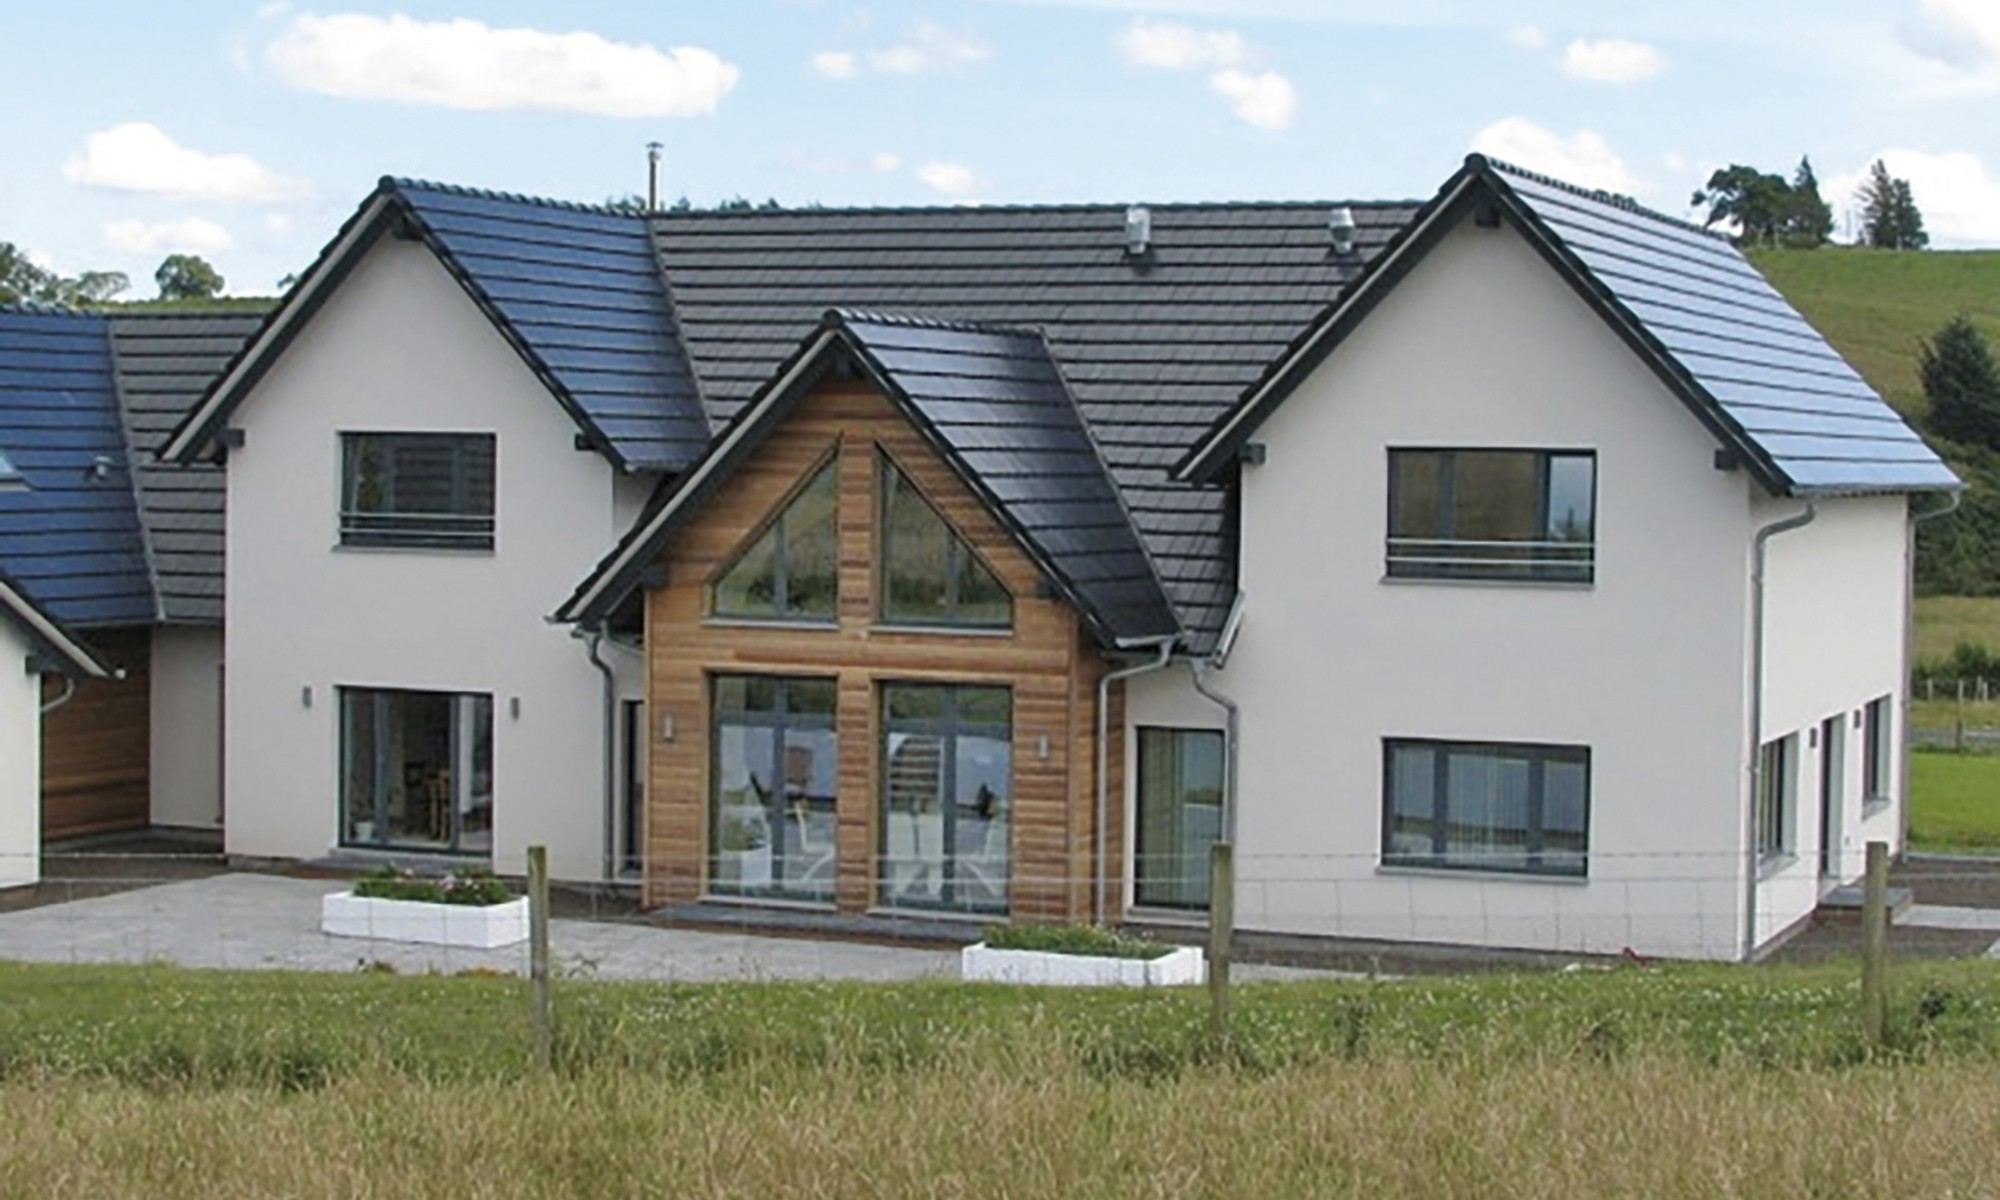 Remote prefabricated property with a built-in pool, situated in rural Scotland